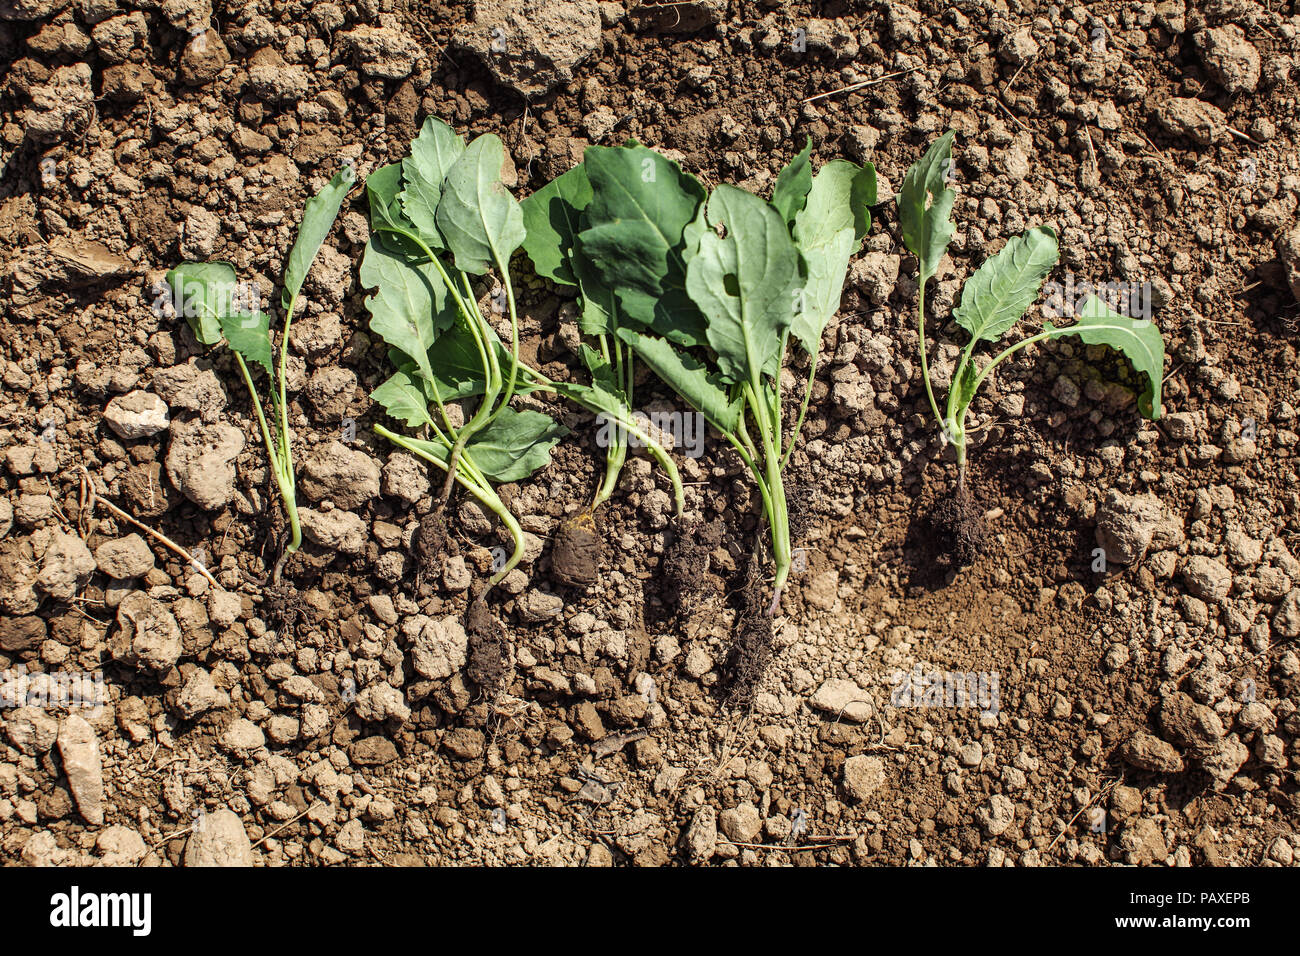 Young kohlrabi nurseling plants - ready to be planted into ground. Spring gardening. - Stock Image